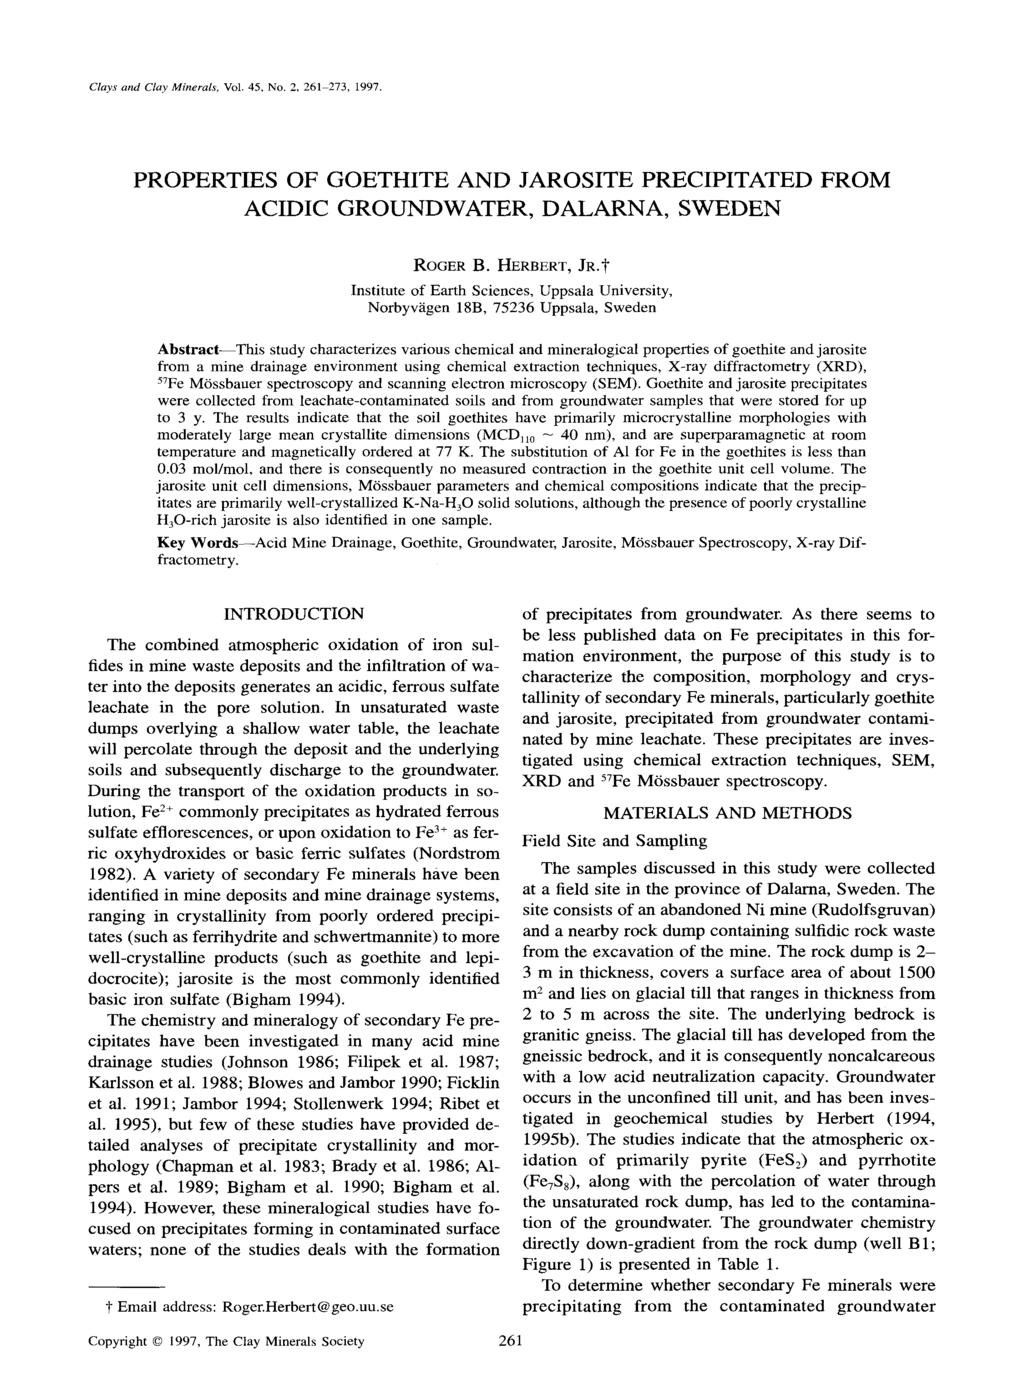 Clays and Clay Minerals, Vol. 45, No. 2, 261 273, 1997. PROPERTIES OF GOETHITE AND JAROSITE PRECIPITATED FROM ACIDIC GROUNDWATER, DALARNA, SWEDEN ROGER B. HERBERT, JR.